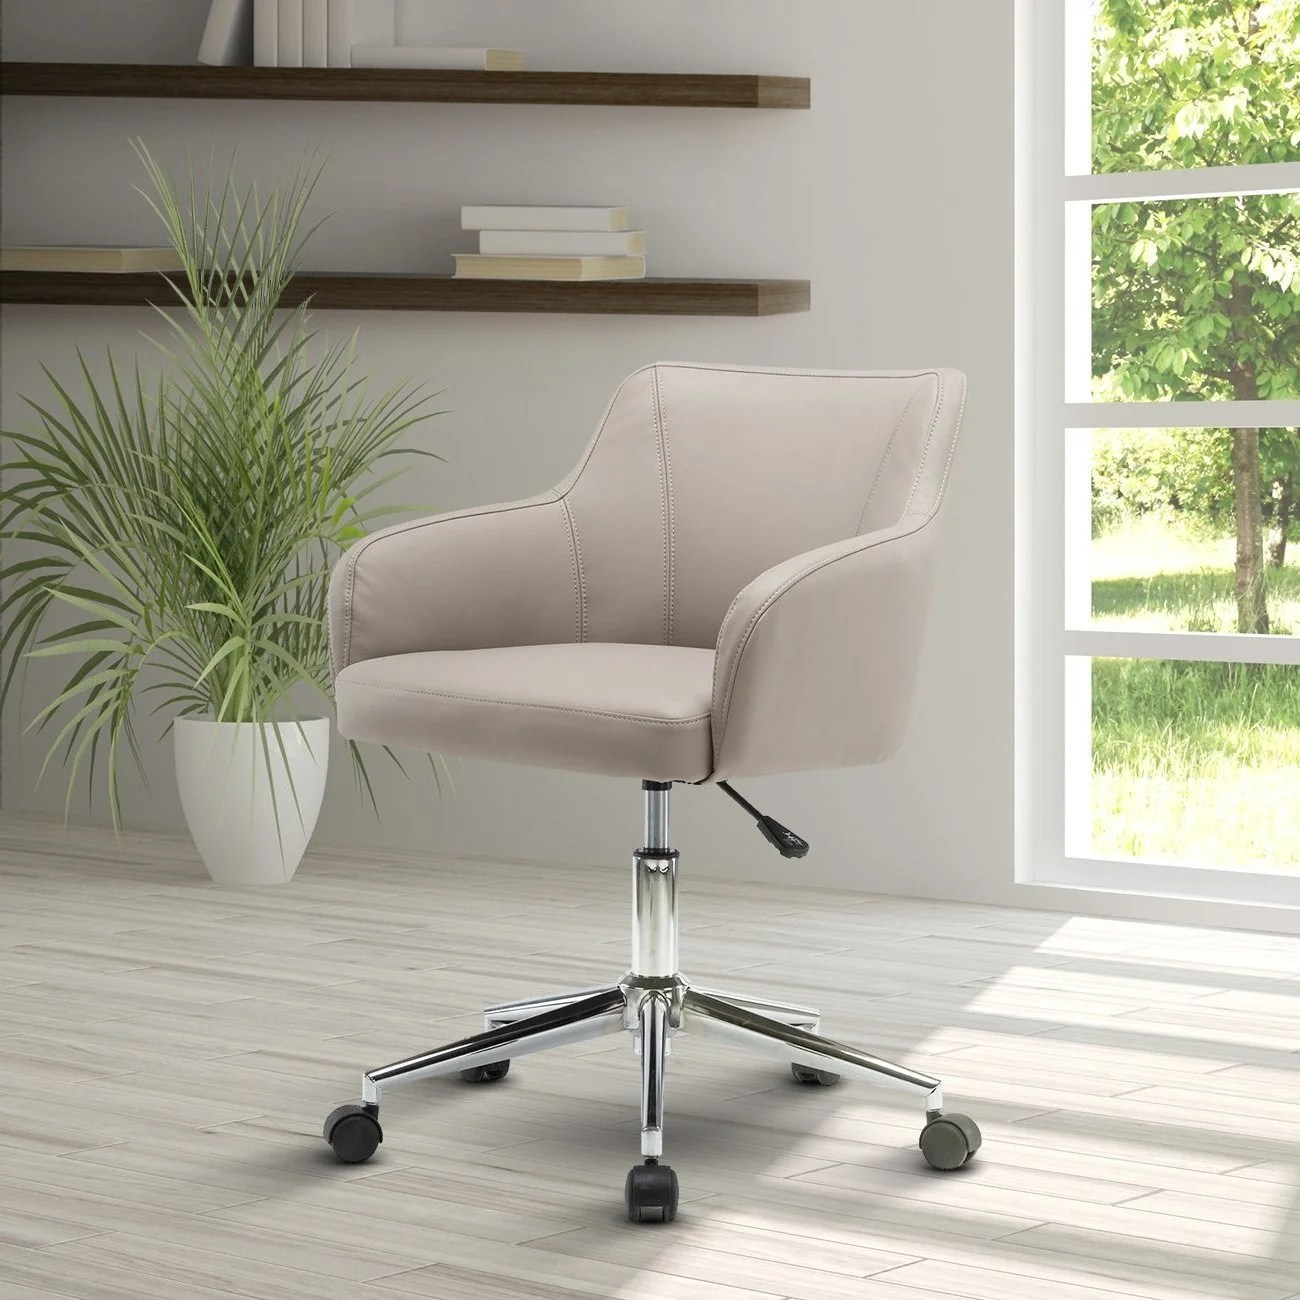 Comfy Office Chairs Urban Designs Beige Comfy And Classy Home Office Chair